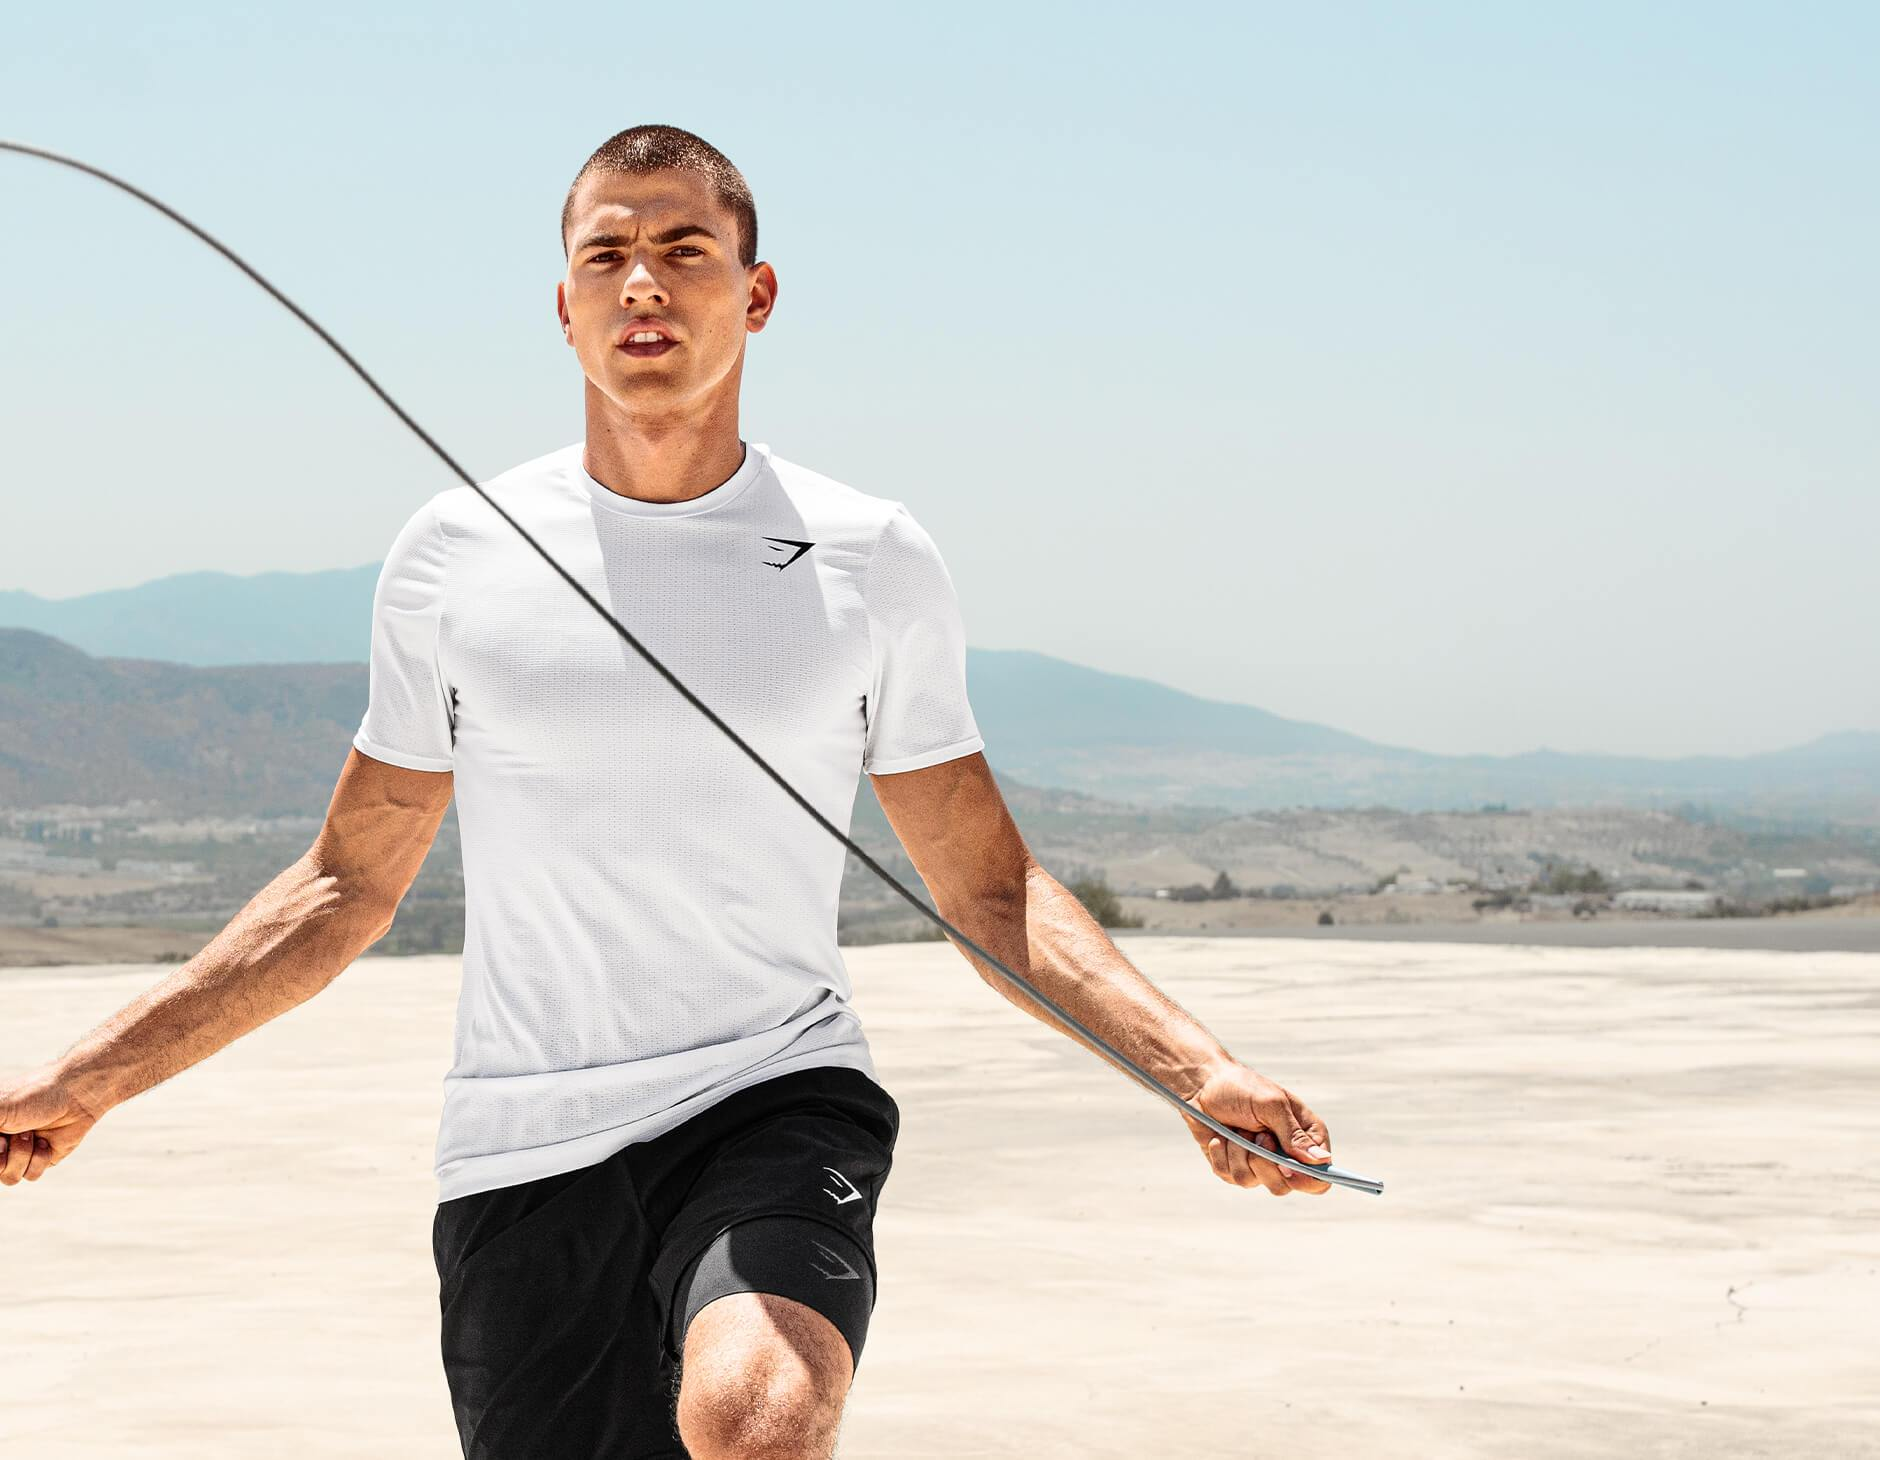 A male model skipping with a rope in desert whilst wearing the Arrival collection.